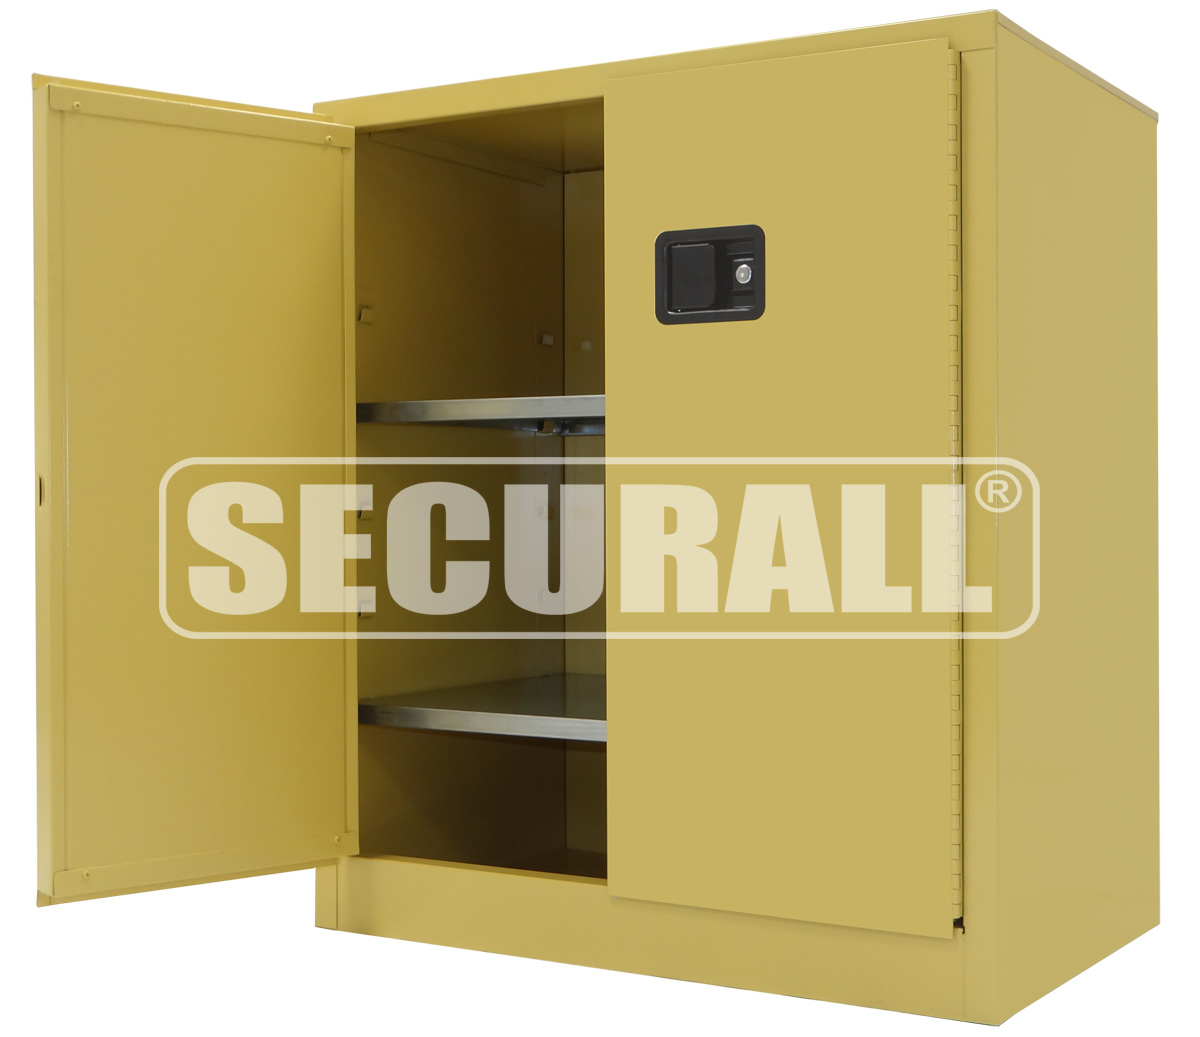 SS242   INDUSTRIAL STORAGE CABINET